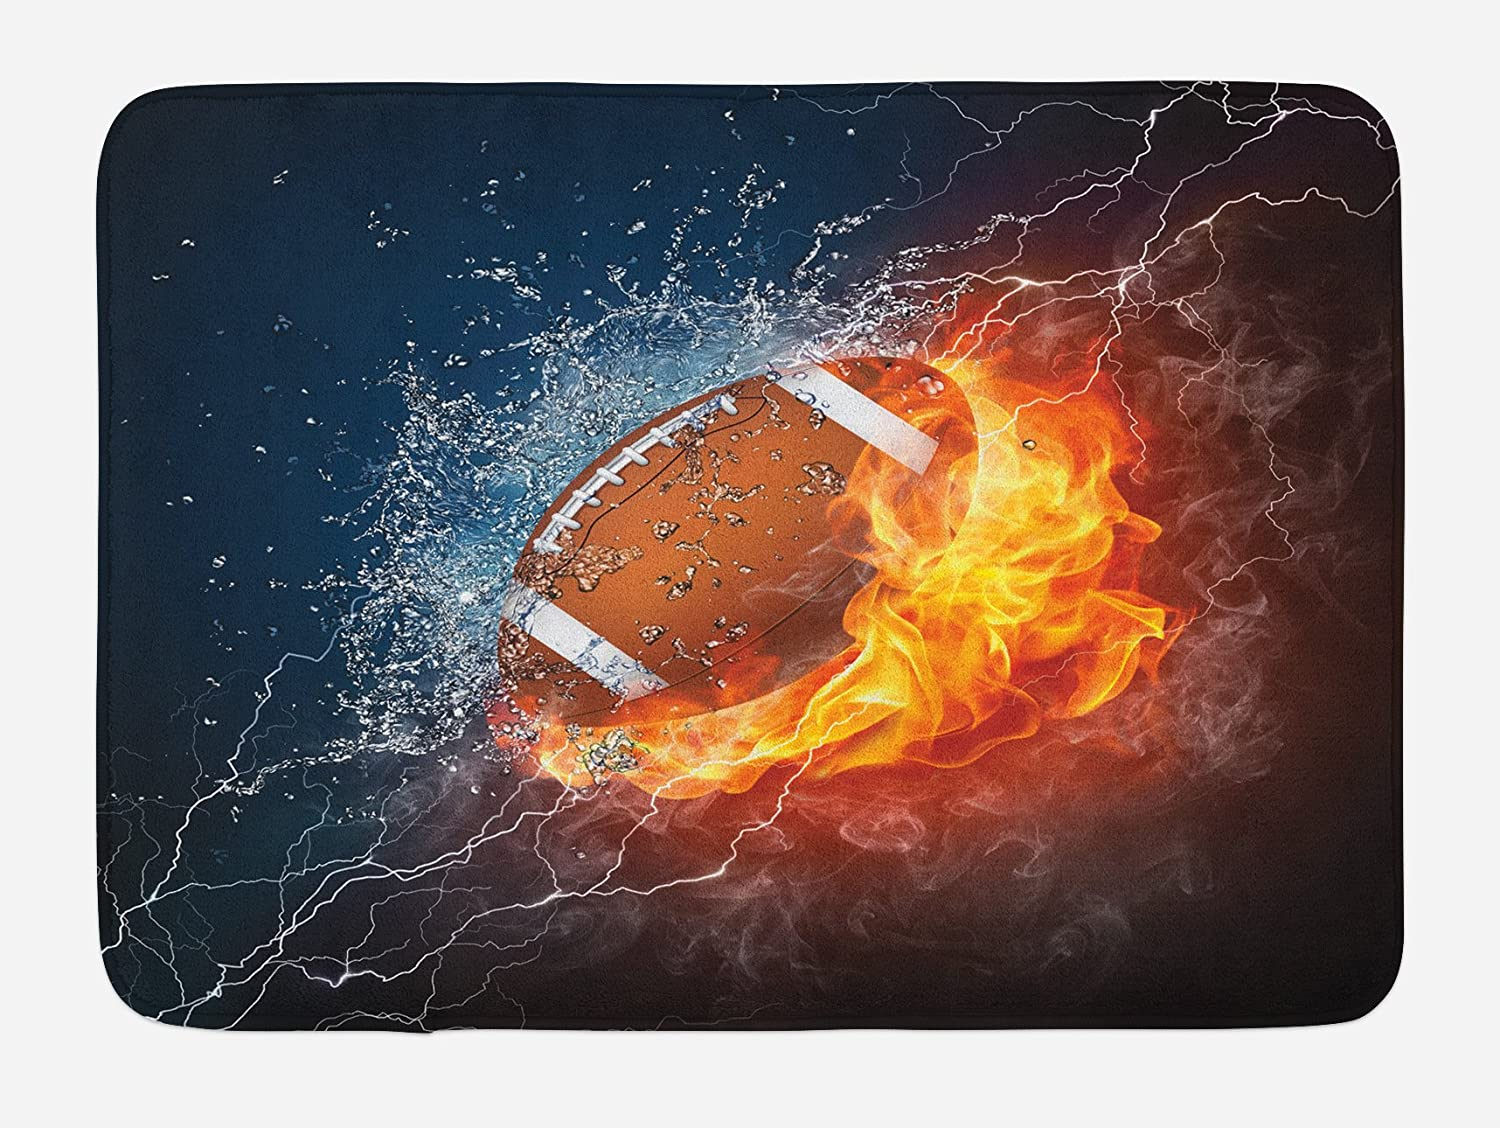 29.5 W X 17.5 W Inches Lunarable Sports Bath Mat Multicolor Plush Bathroom Decor Mat with Non Slip Backing Football on Fire and Water Flame Splashing Thunder Bolt Abstract Conceptual Art